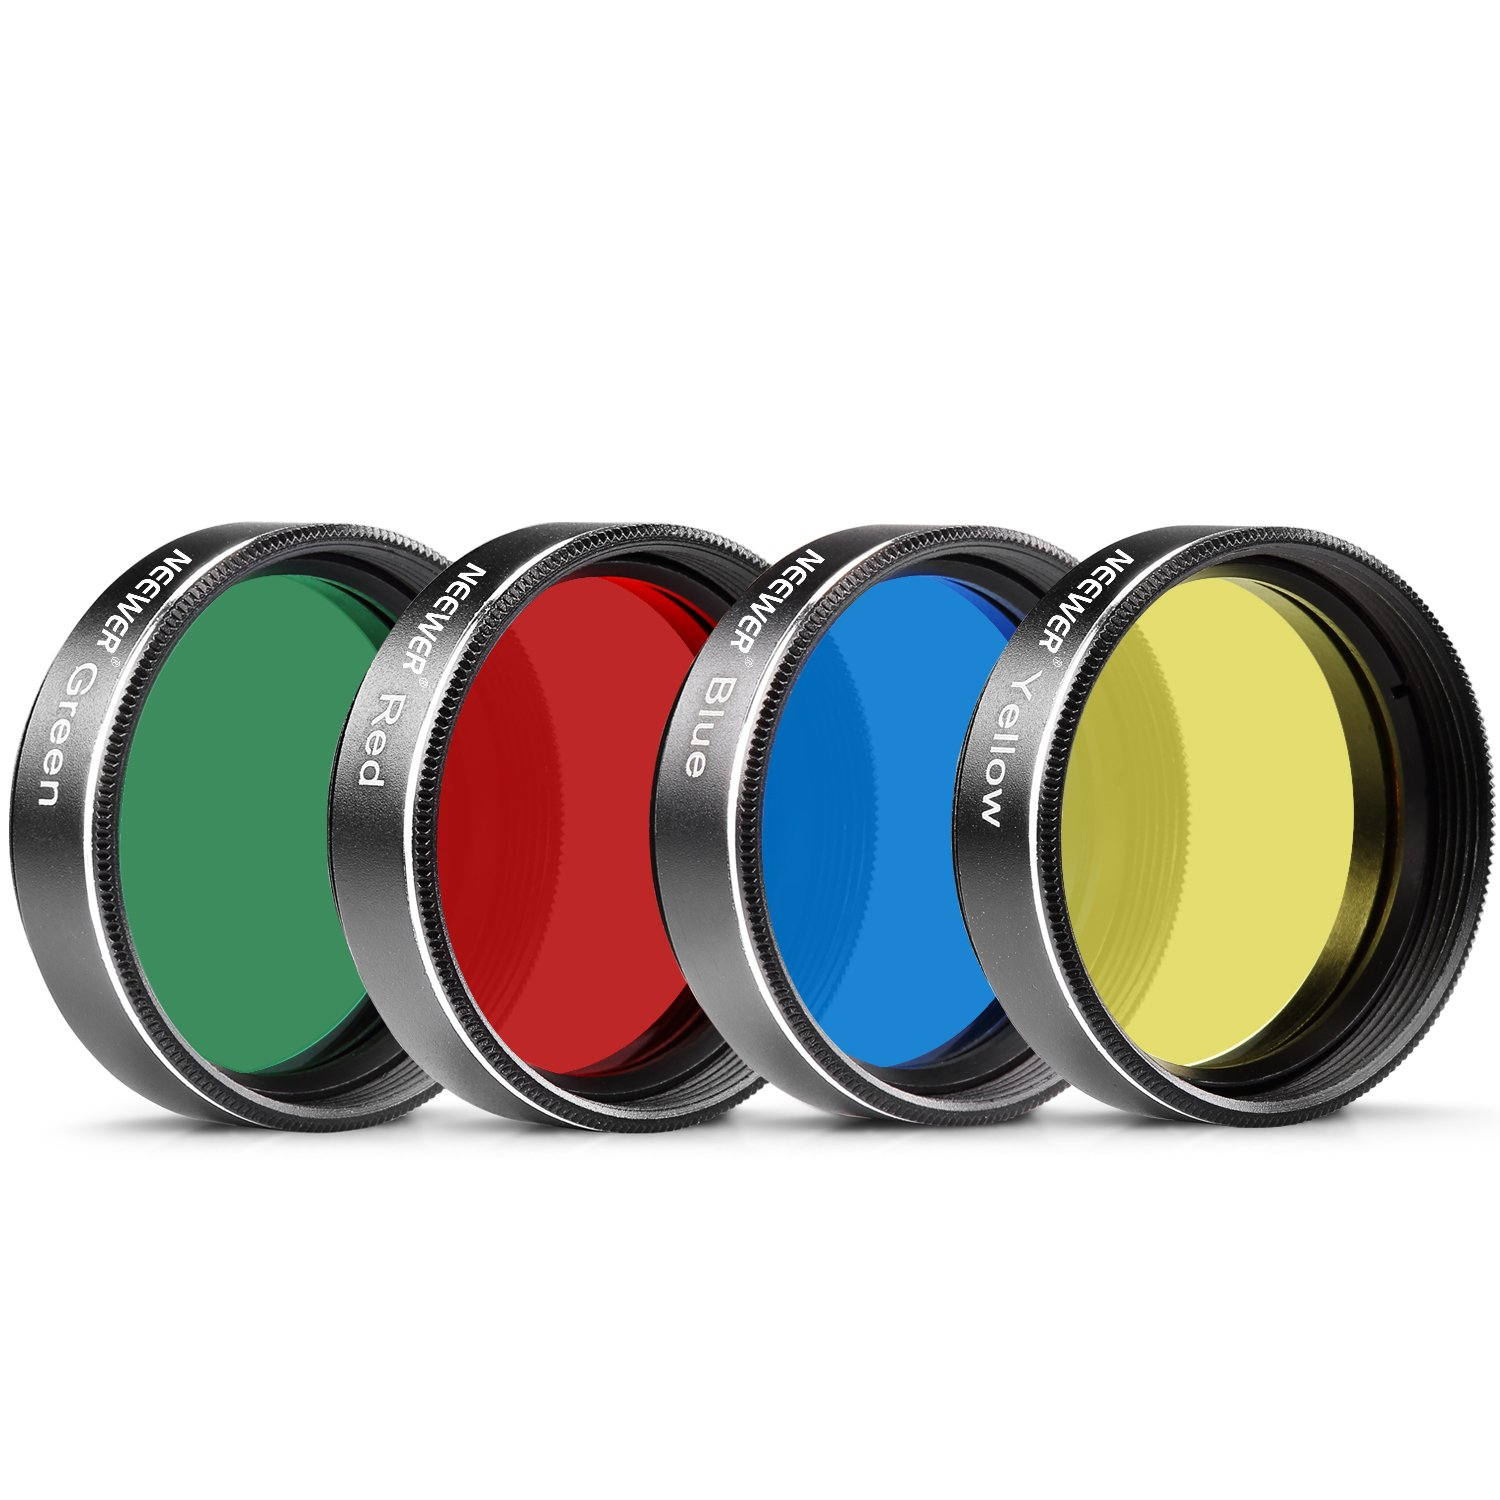 Neewer 4PCS Standard 1.25 inches Color Filter Set for Telescope Eyepiece: Red Yellow Green Blue, Perfect for Lunar and Planetary Observation